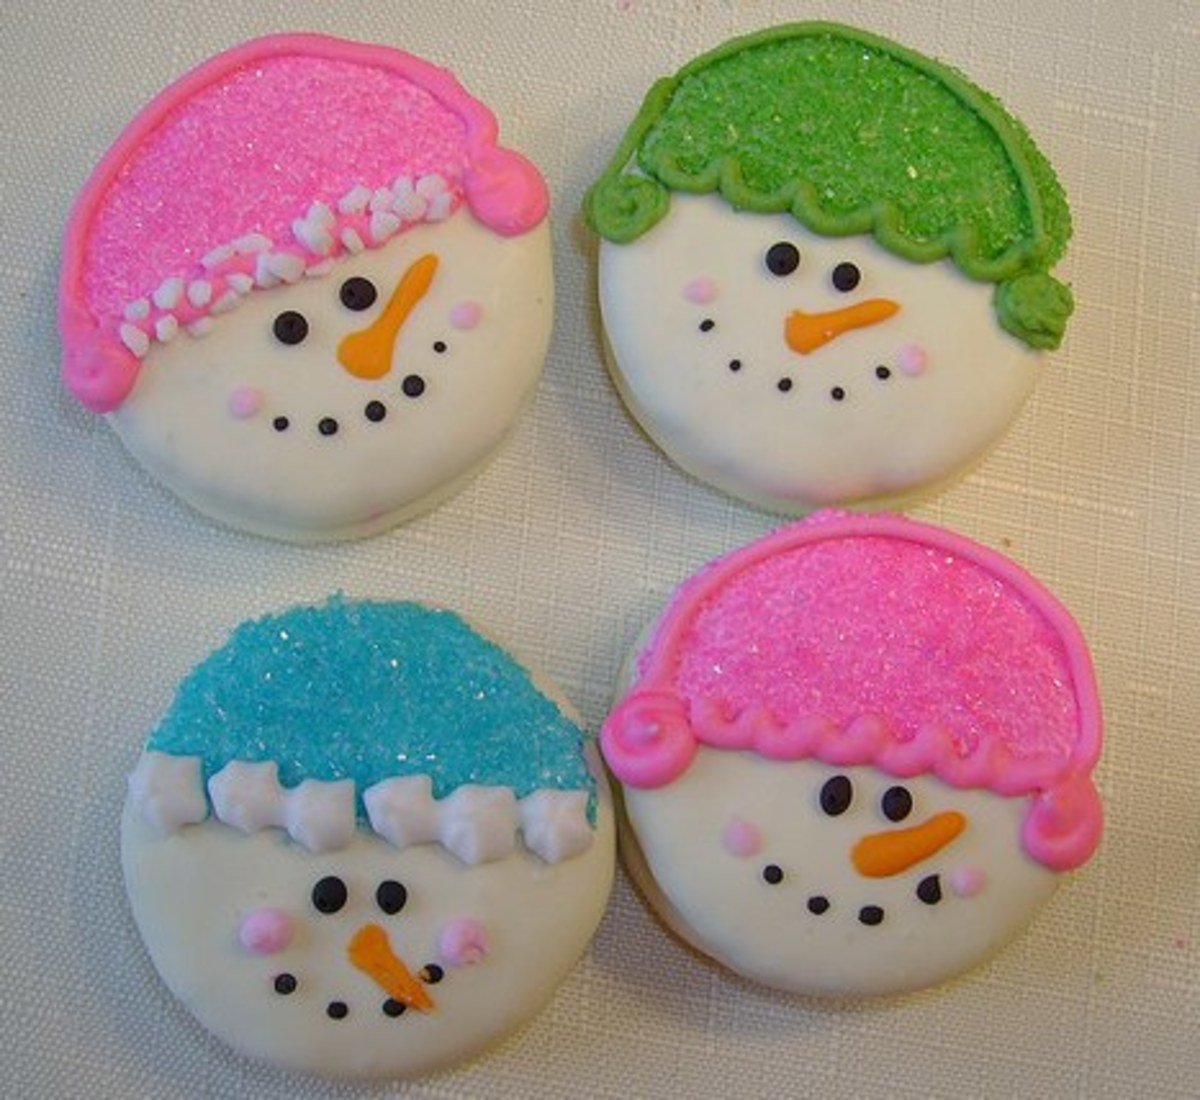 Easy snowman cookies made from Oreos dipped in white chocolate. Hats made from colored sprinkles.